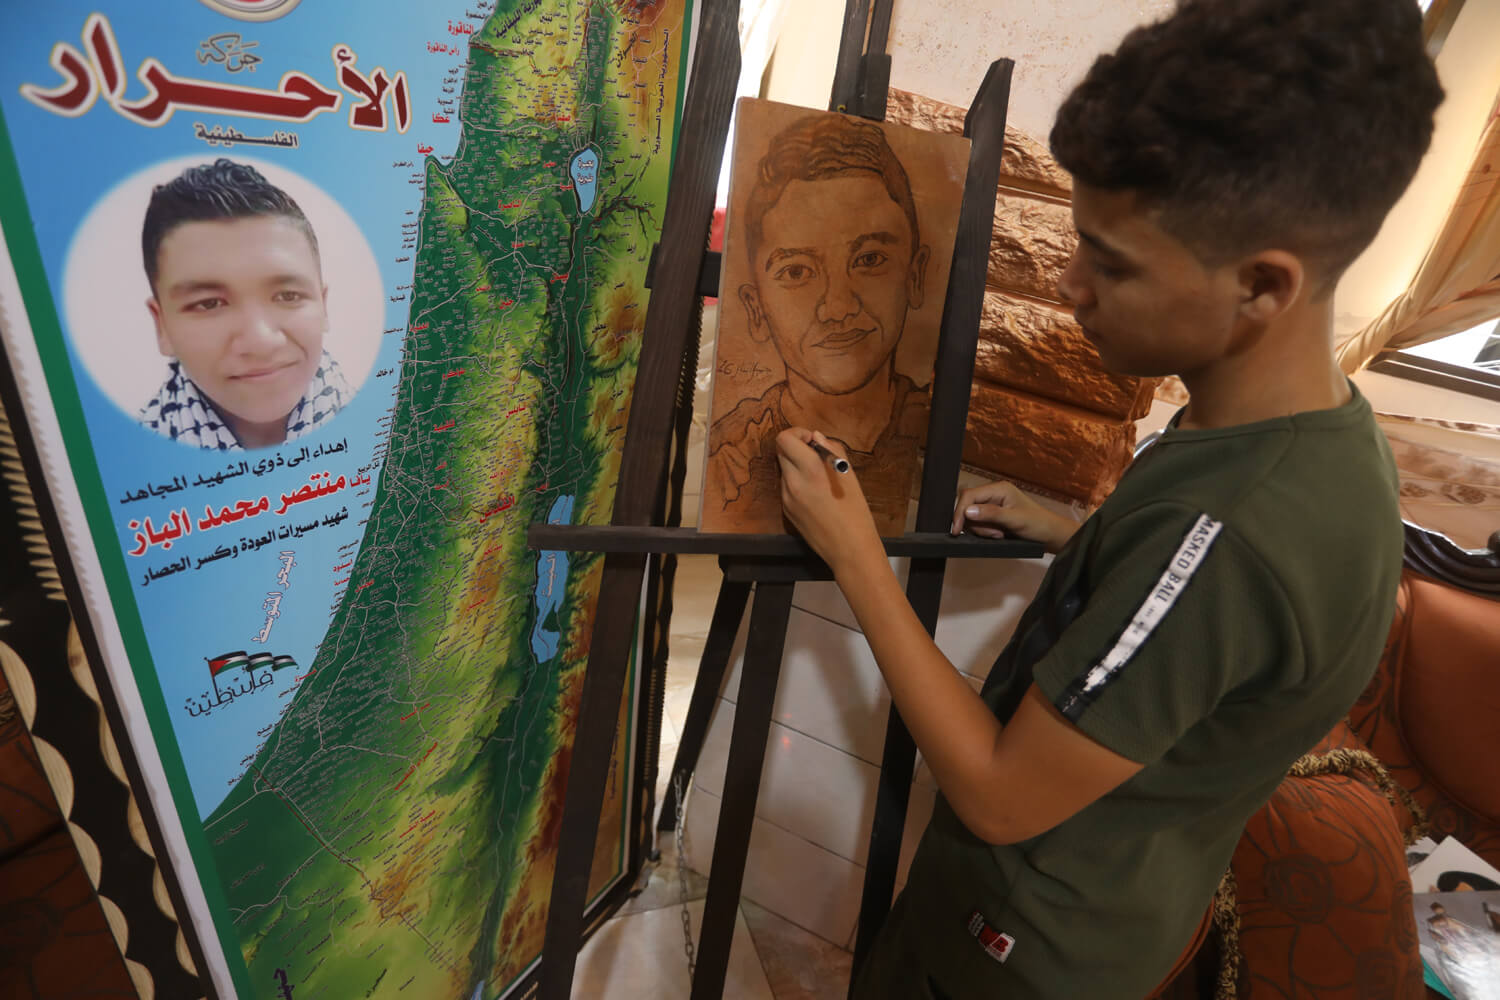 Jamil drawing a portrait of his brother, Muntaser al-Baz. (Photo: Mohammed Asad)